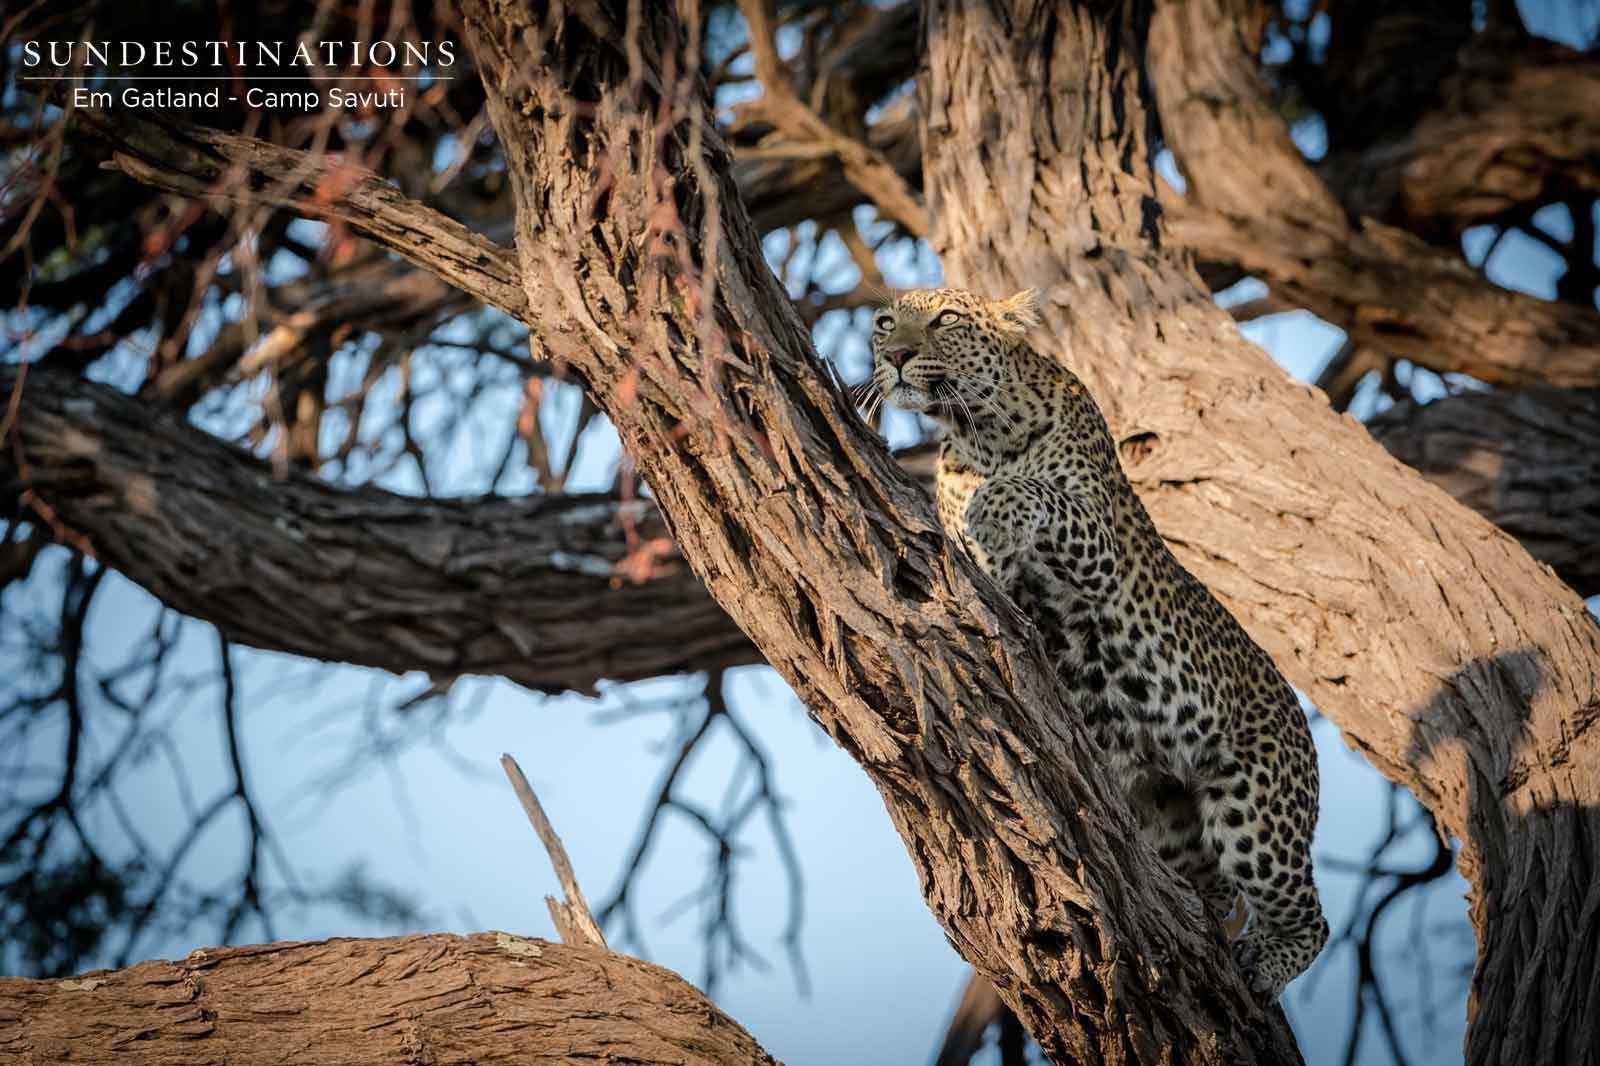 Leopard Crawling Up the Tree!